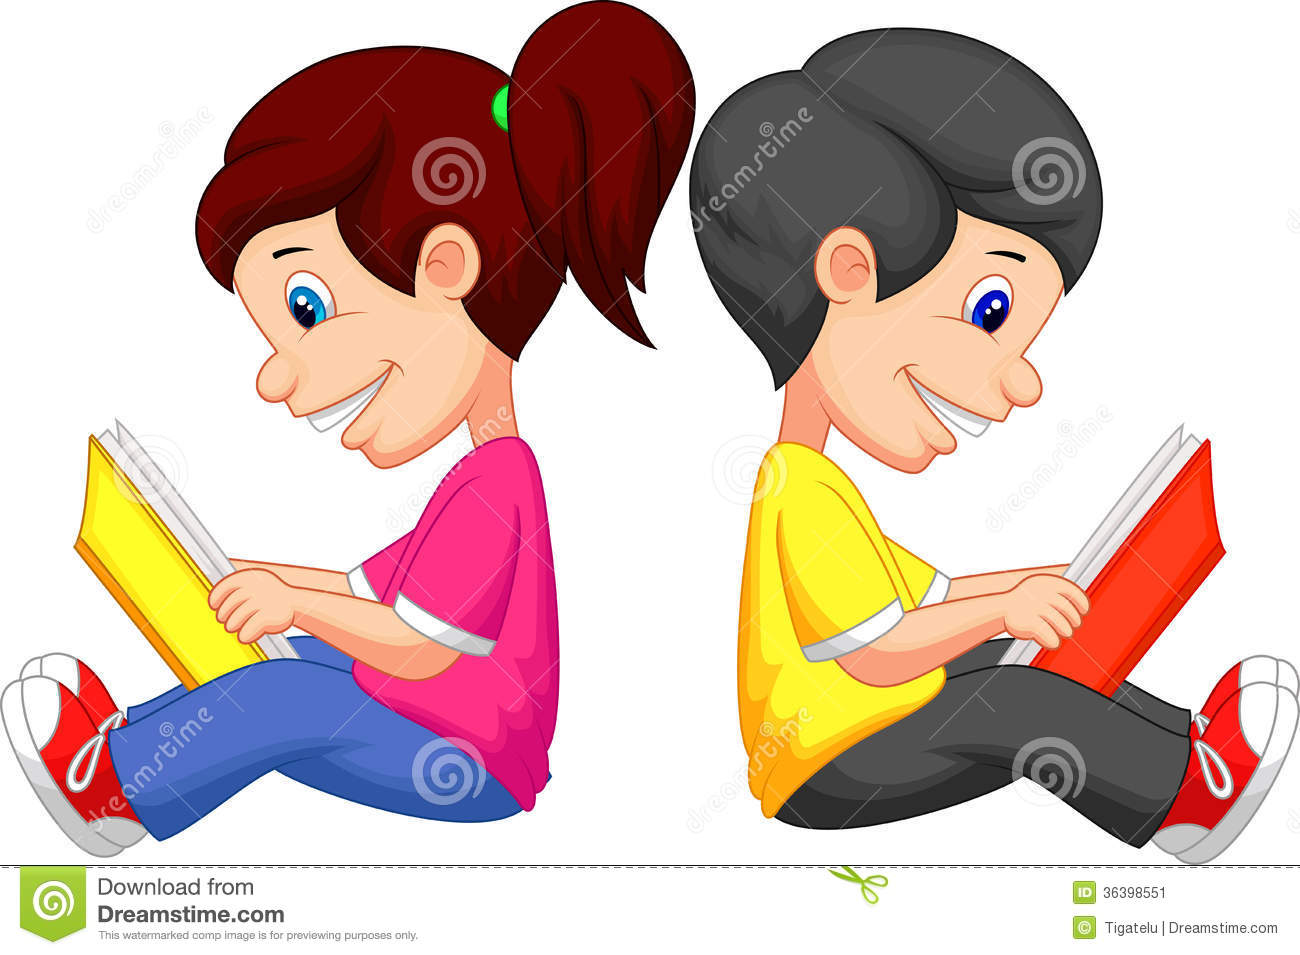 Cartoon Boy And Girl Reading Book Stock Image - Image: 36398551